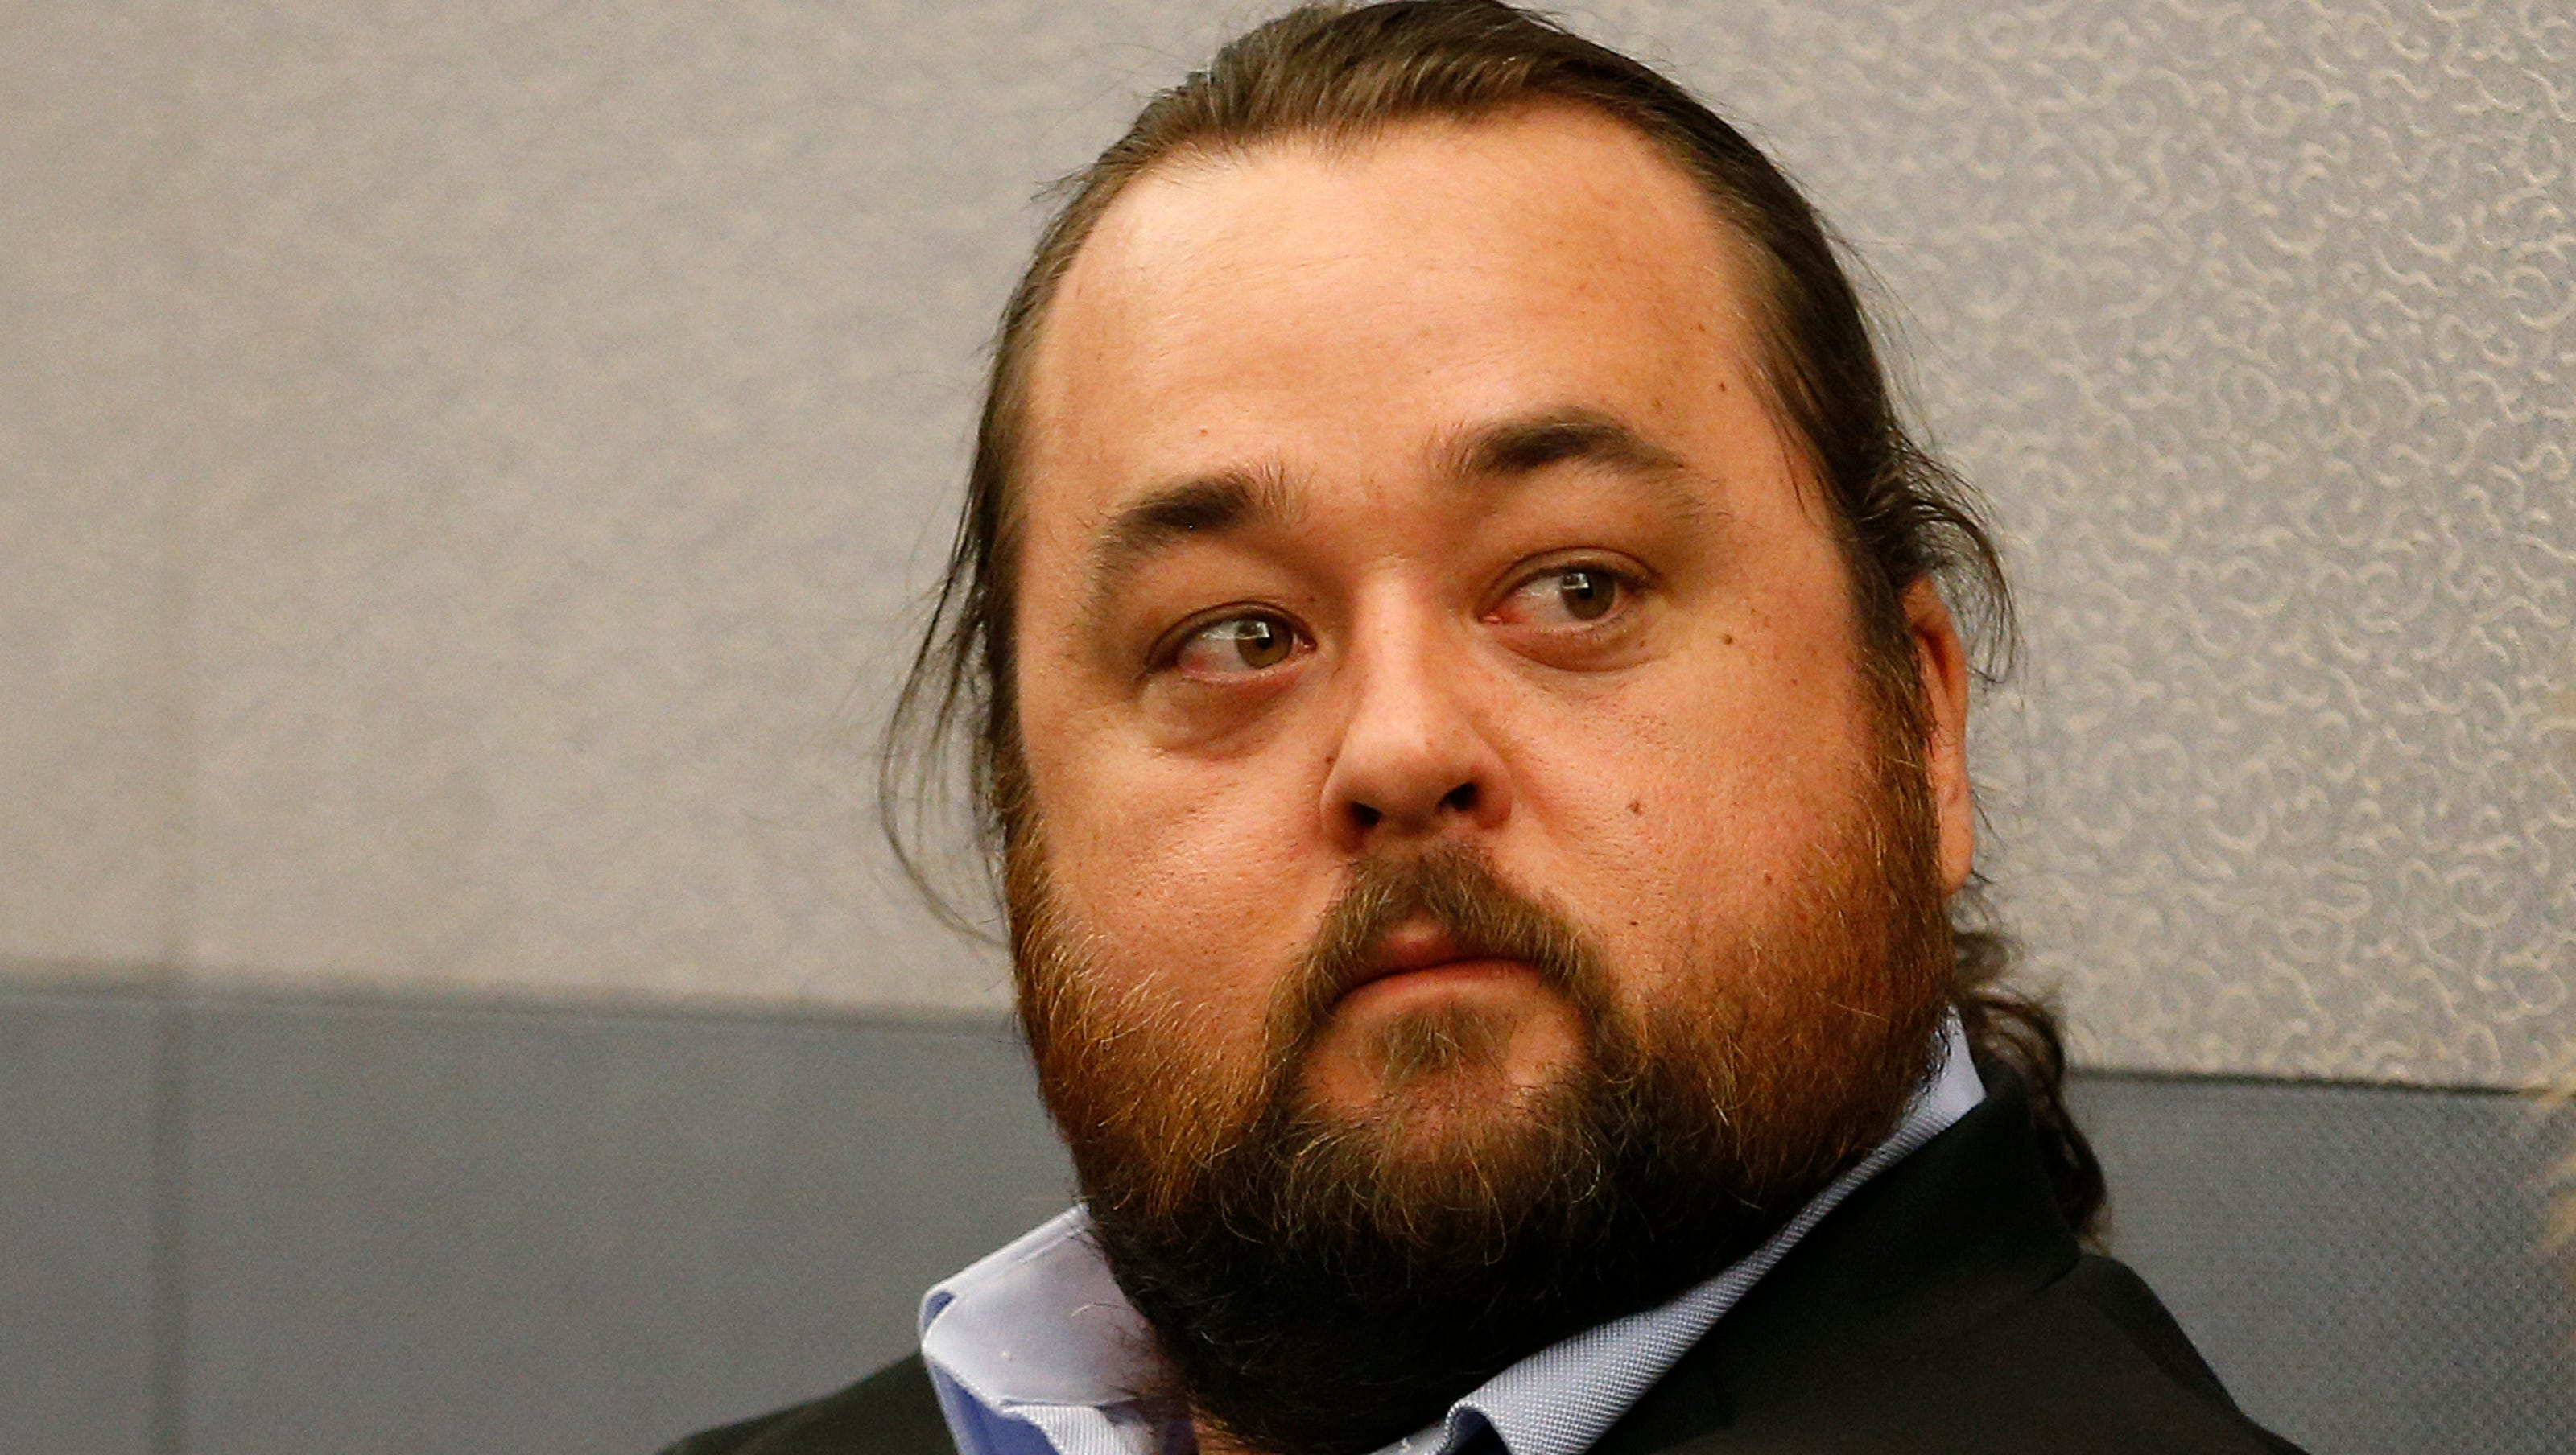 'Chumlee' of 'Pawn Stars' won't see jail on guns, drugs charges